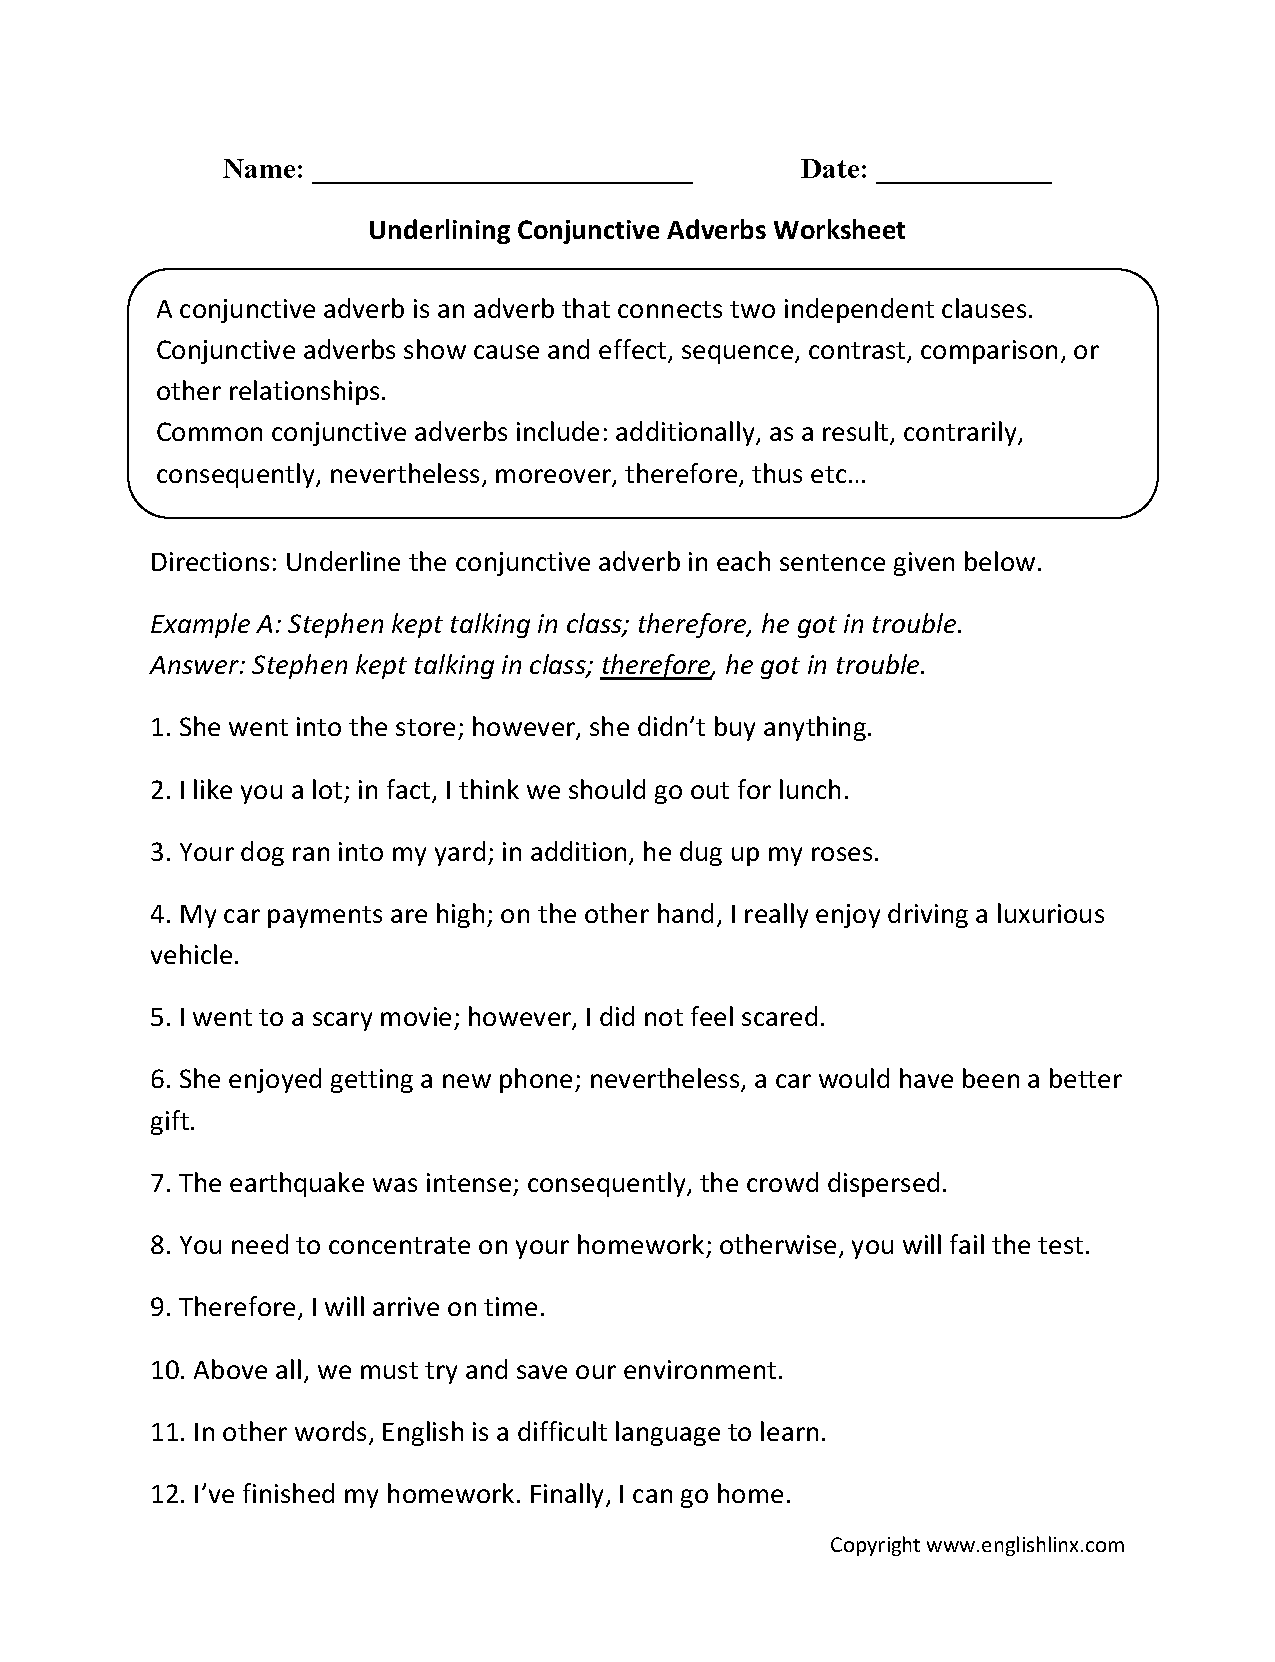 Weirdmailus  Gorgeous Englishlinxcom  Conjunctions Worksheets With Inspiring Worksheet With Amazing Reading Comprehension Worksheet For St Grade Also Fraction Of A Quantity Worksheet In Addition Integer Worksheets Grade  And Cause And Effect Worksheets For Grade  As Well As This That Those These Worksheet Additionally Islam For Kids Worksheets From Englishlinxcom With Weirdmailus  Inspiring Englishlinxcom  Conjunctions Worksheets With Amazing Worksheet And Gorgeous Reading Comprehension Worksheet For St Grade Also Fraction Of A Quantity Worksheet In Addition Integer Worksheets Grade  From Englishlinxcom